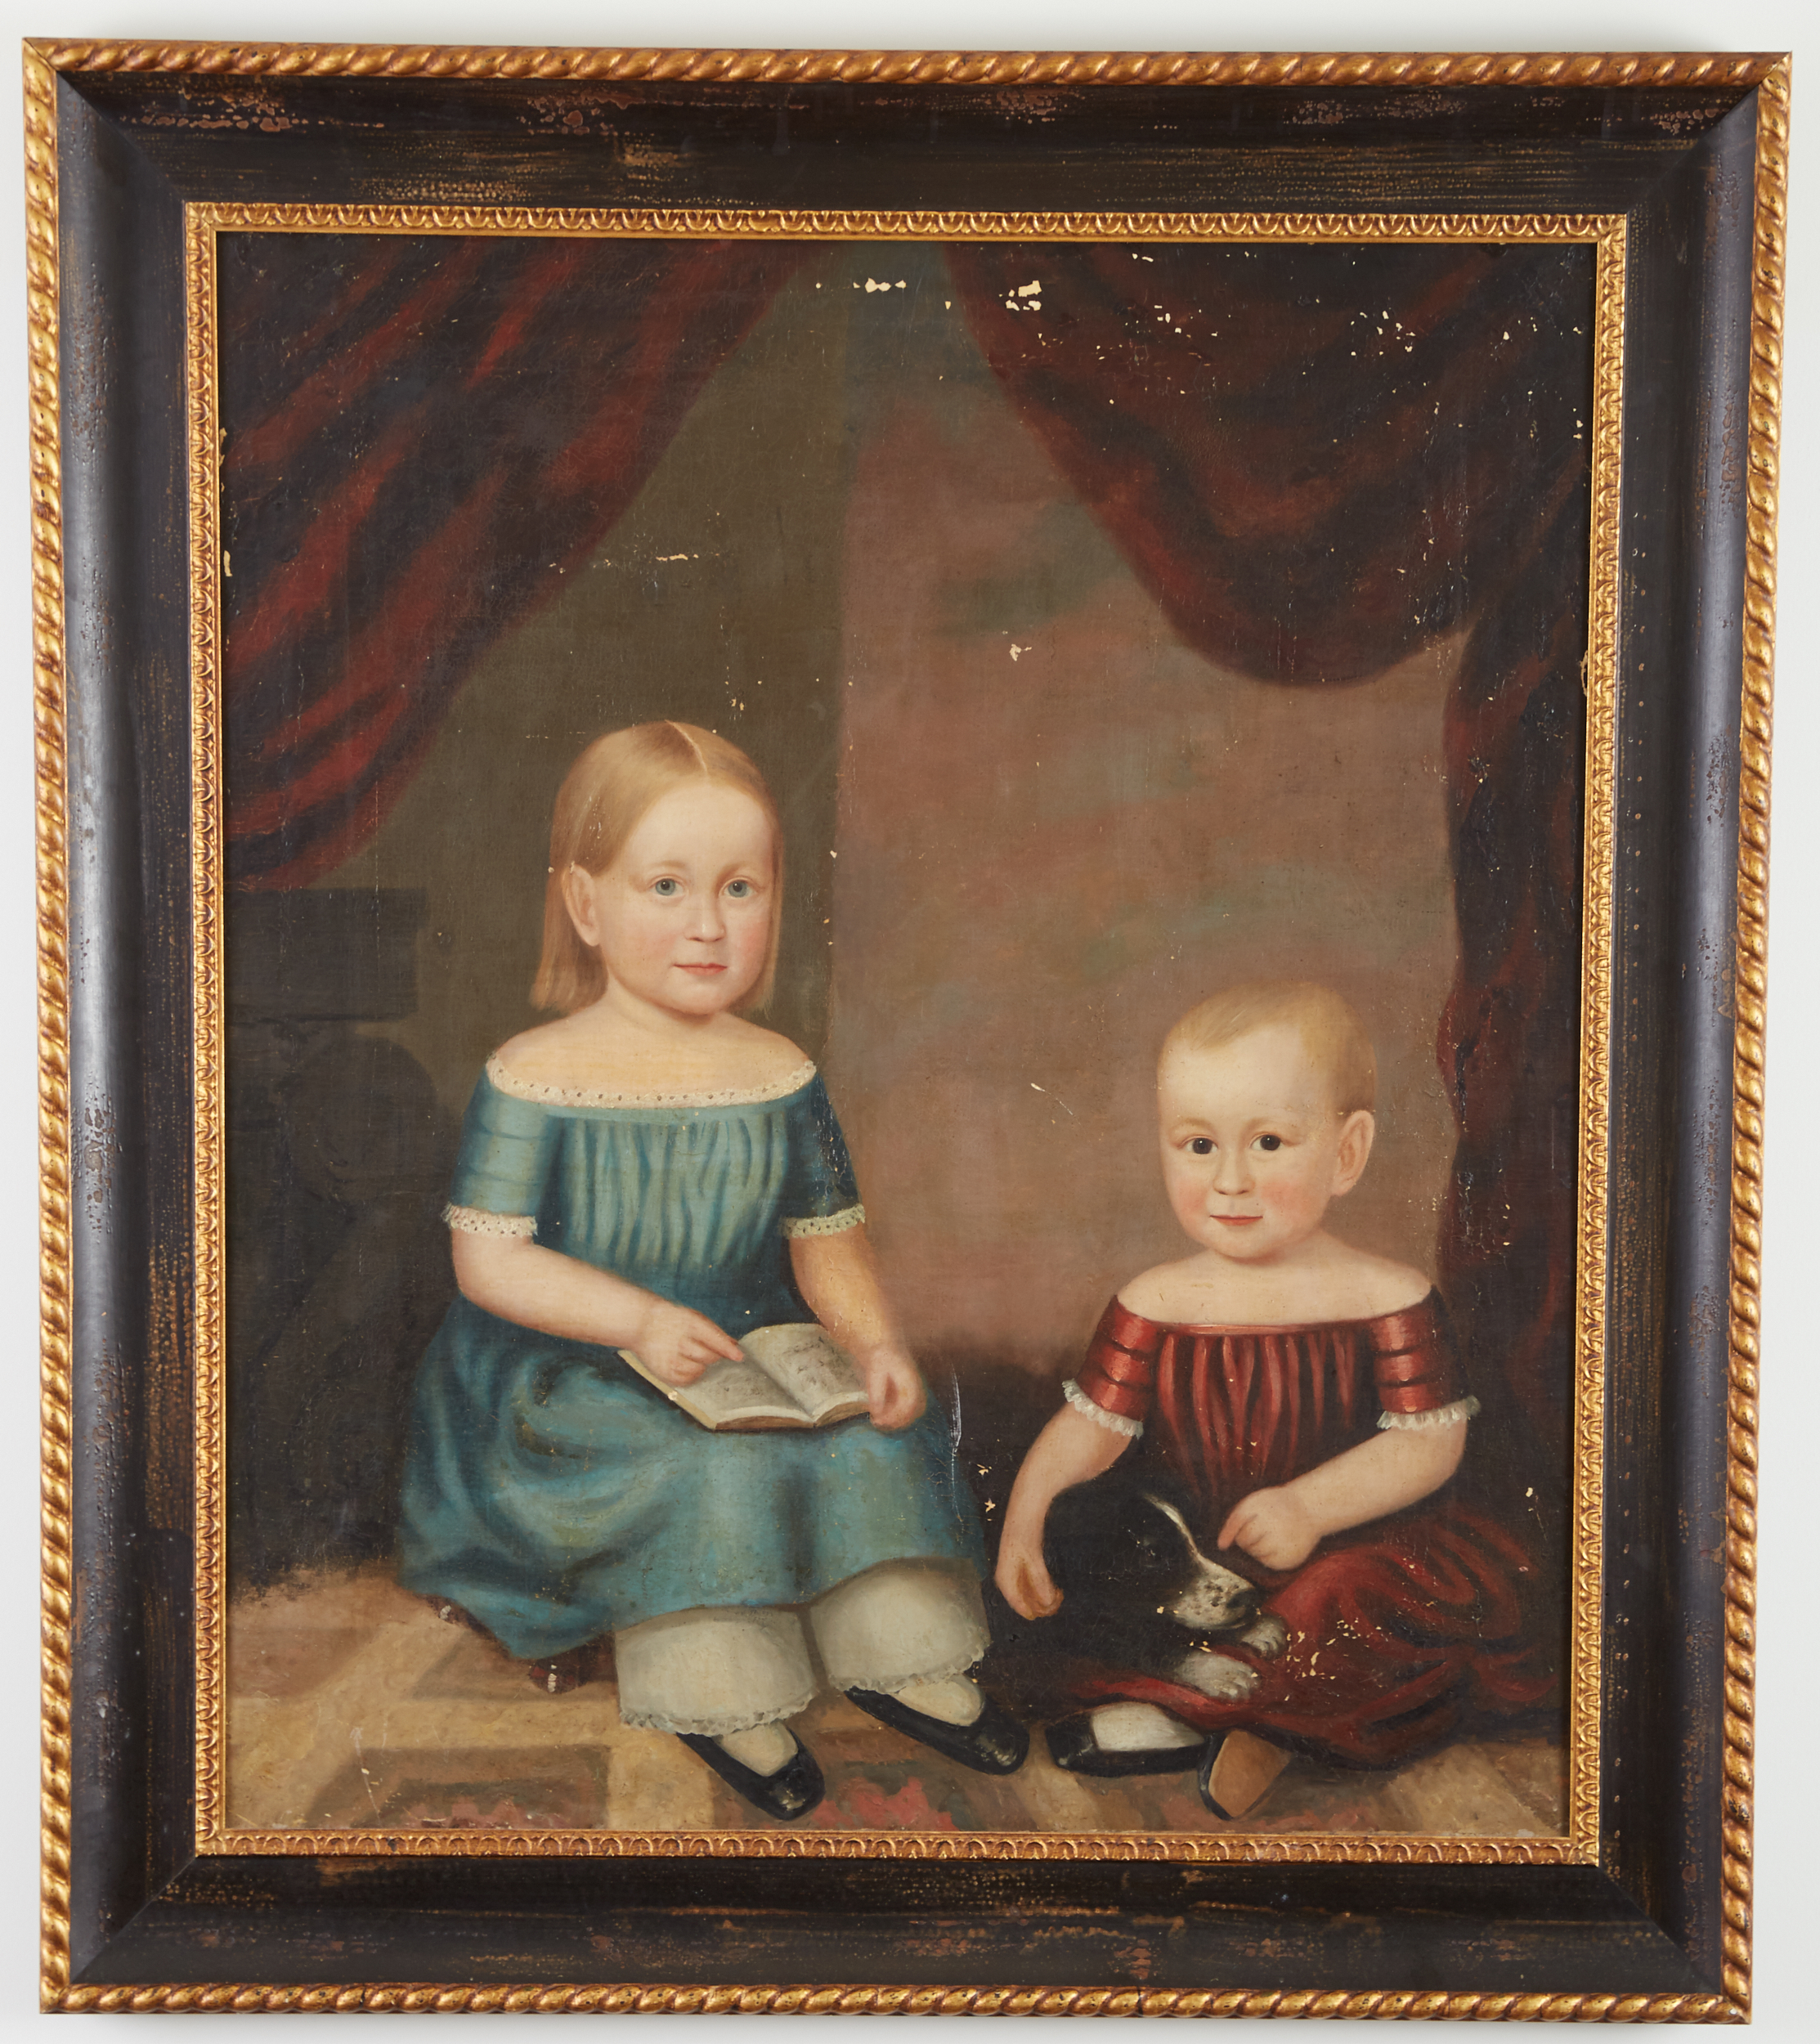 Lot 3 - 19th Century American School Folk Art Portrait Children and a Dog Unsigned